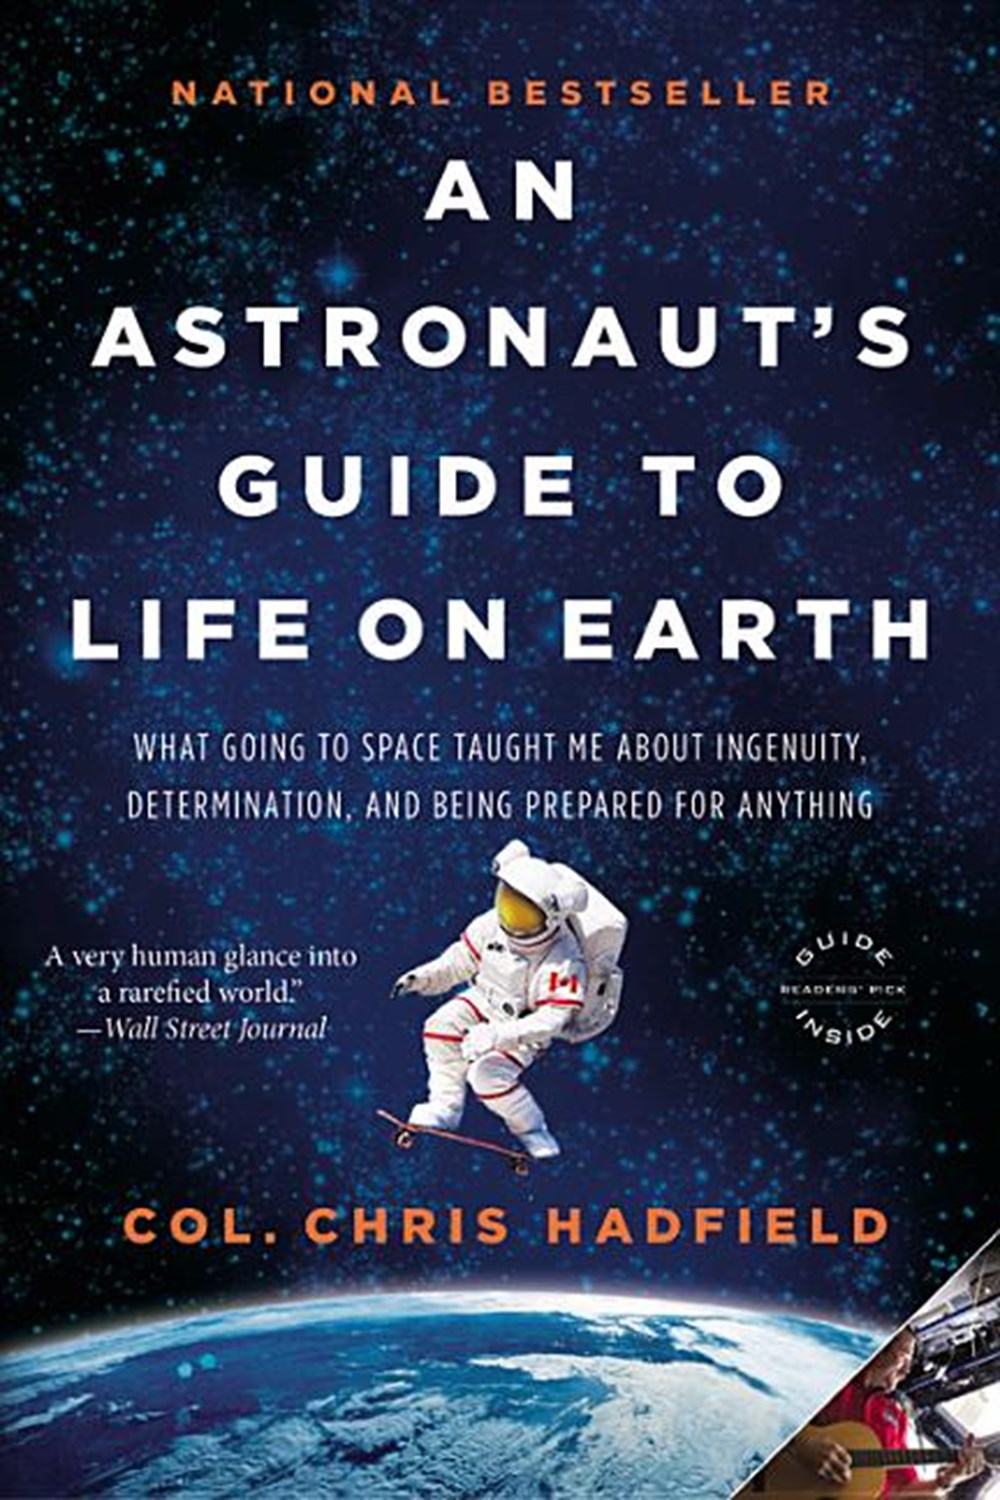 Astronaut's Guide to Life on Earth What Going to Space Taught Me about Ingenuity, Determination, and